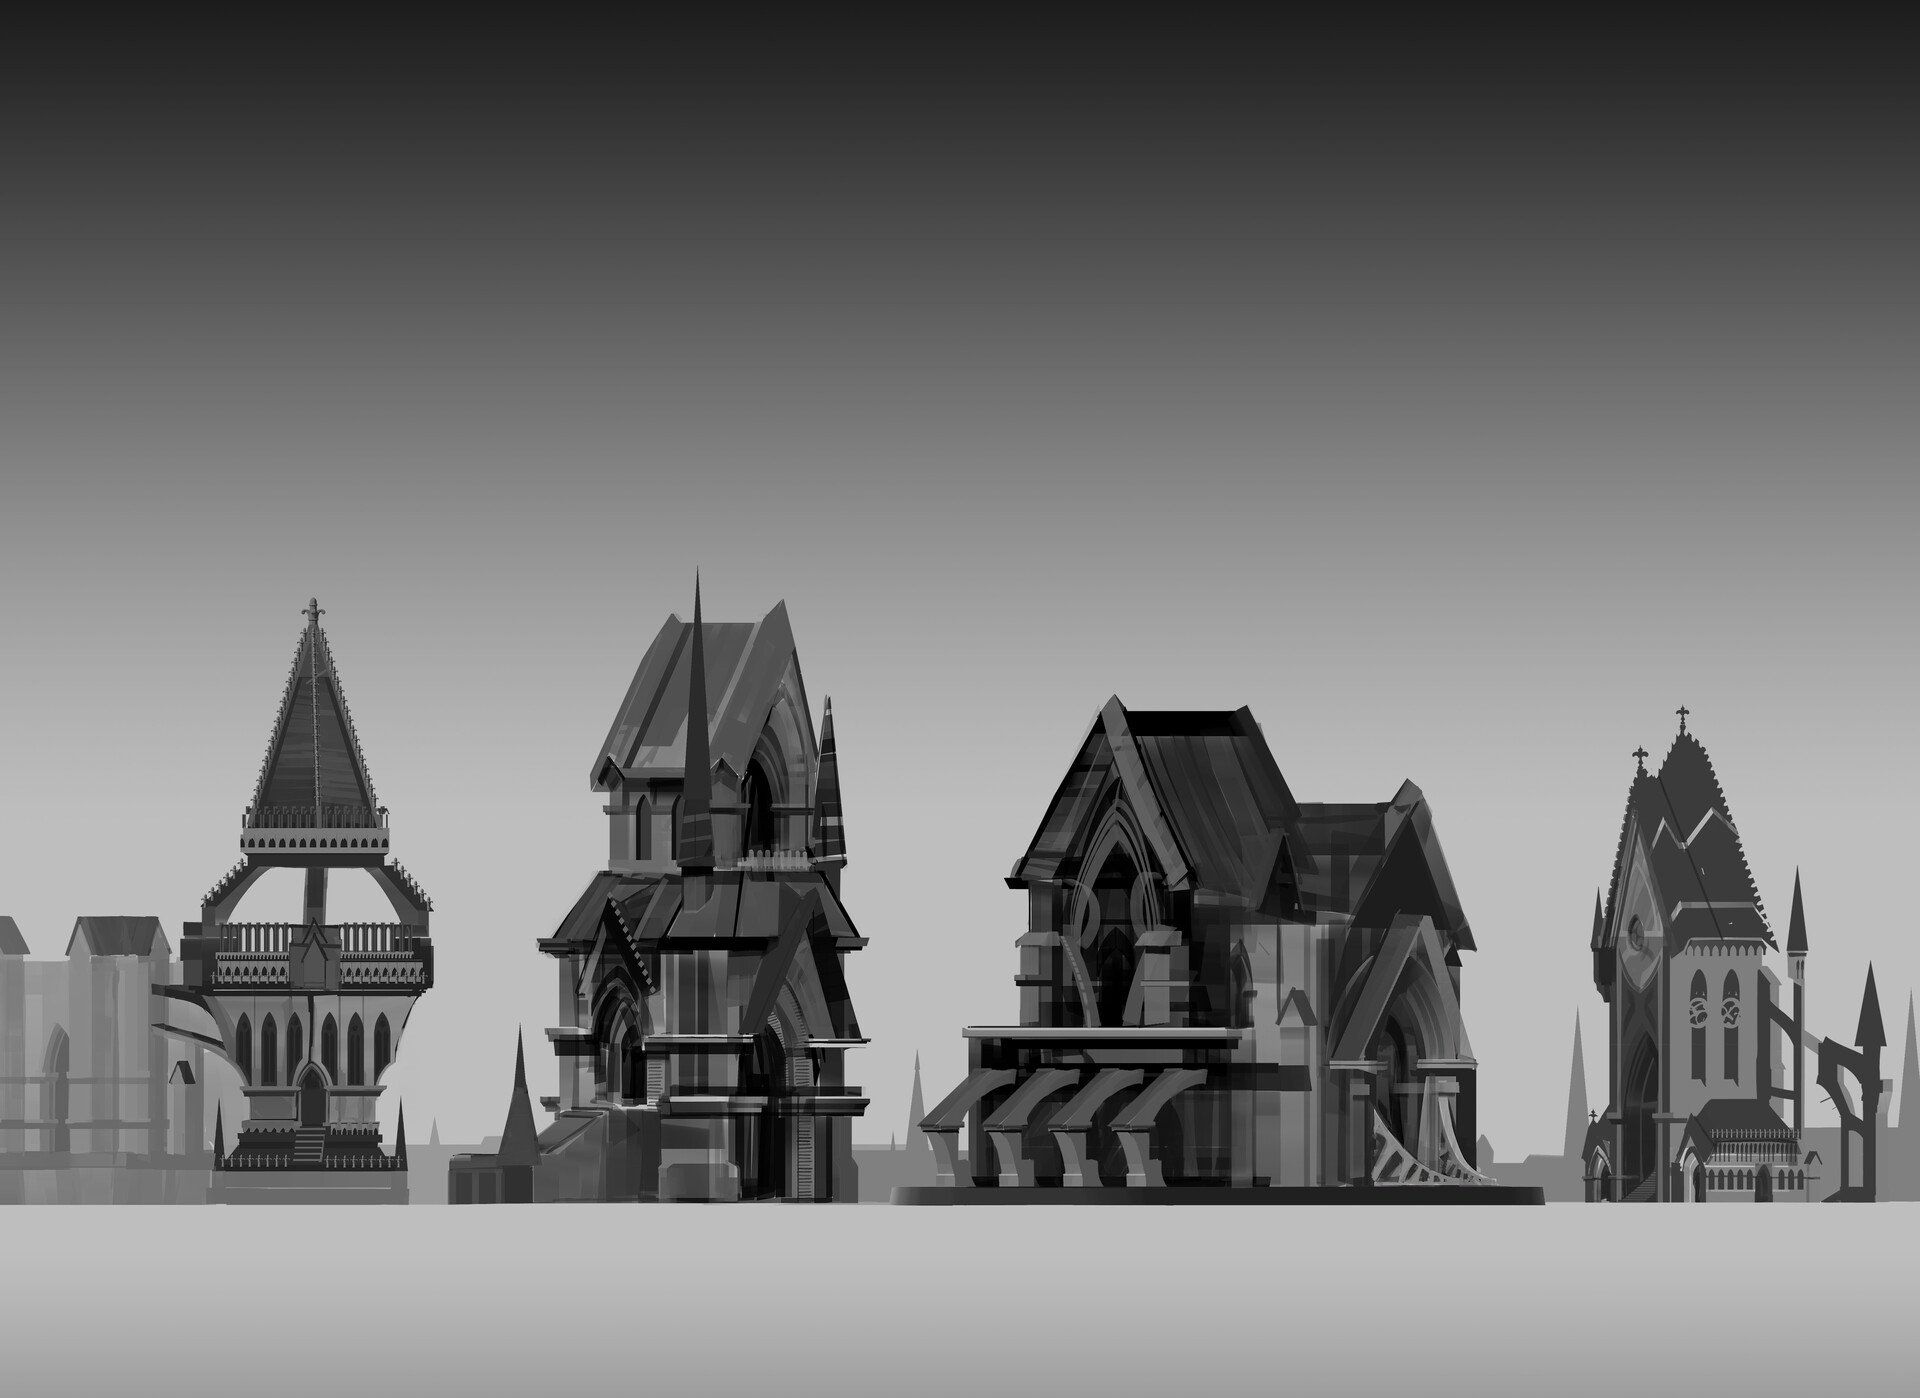 Architectural exploration. I wanted to push the gothic architectural style a little bit, but not necessarily to be busier than real life.